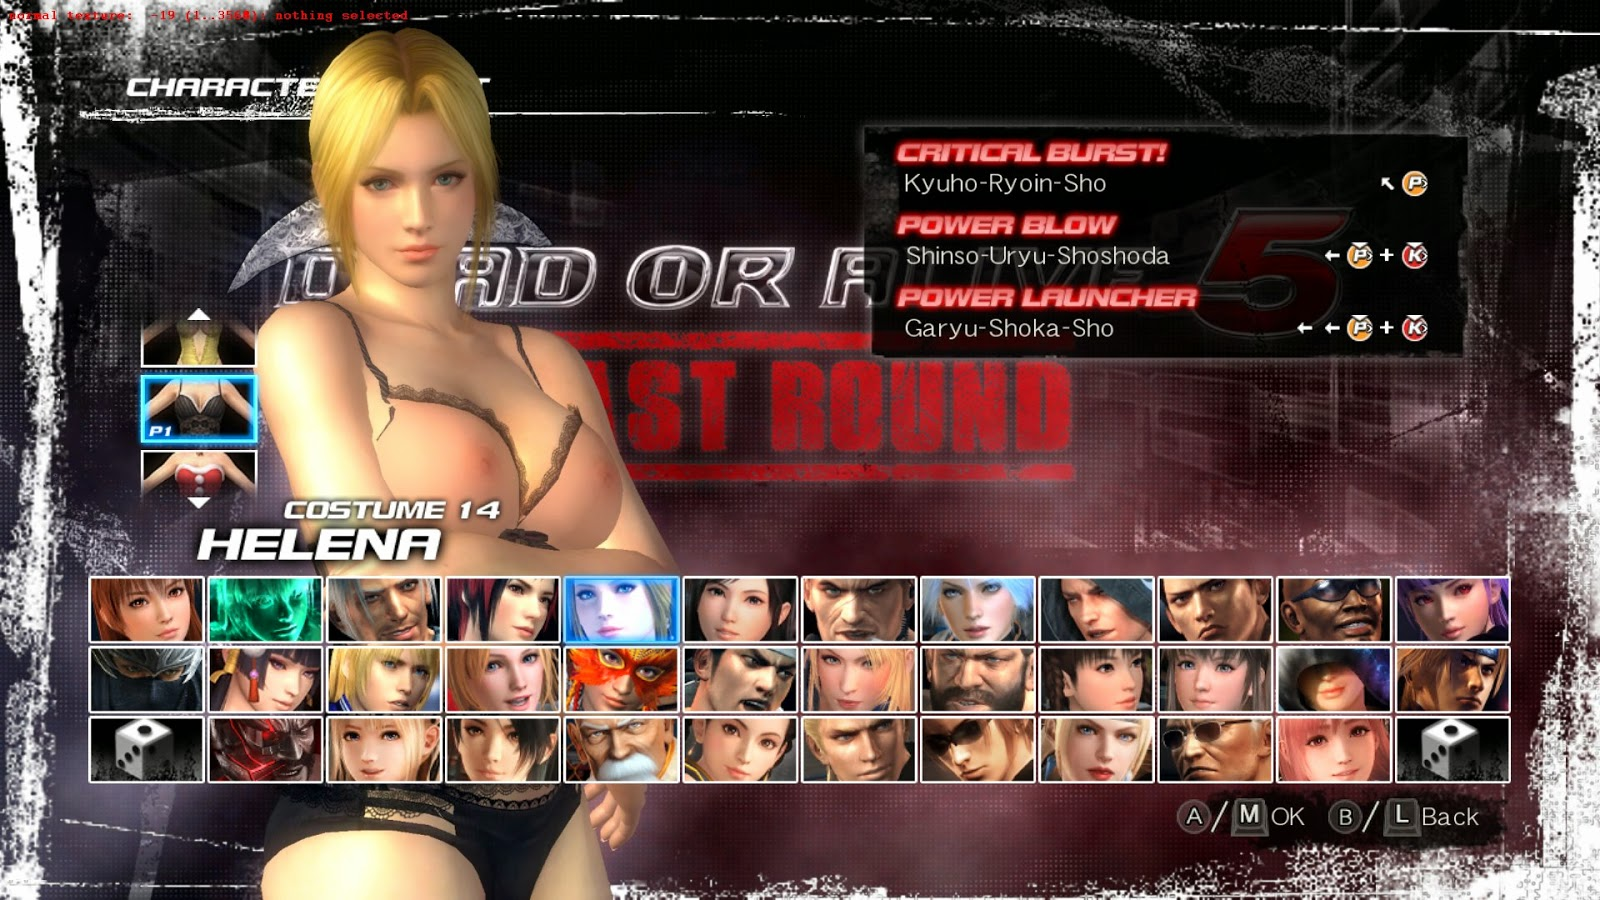 doa5-nude-mod---helena-custome-14,DOA5 Nude Mod - Helena Custome 14,Game, Game Offline, Best Game, GamePlay, game nice, game good, mods game, game mods, mods, game hardcode, cheat game, game trick, game sex, games, game bet, download, downgame, game hot - Mod Dead Or Alive 5 Last Round Free